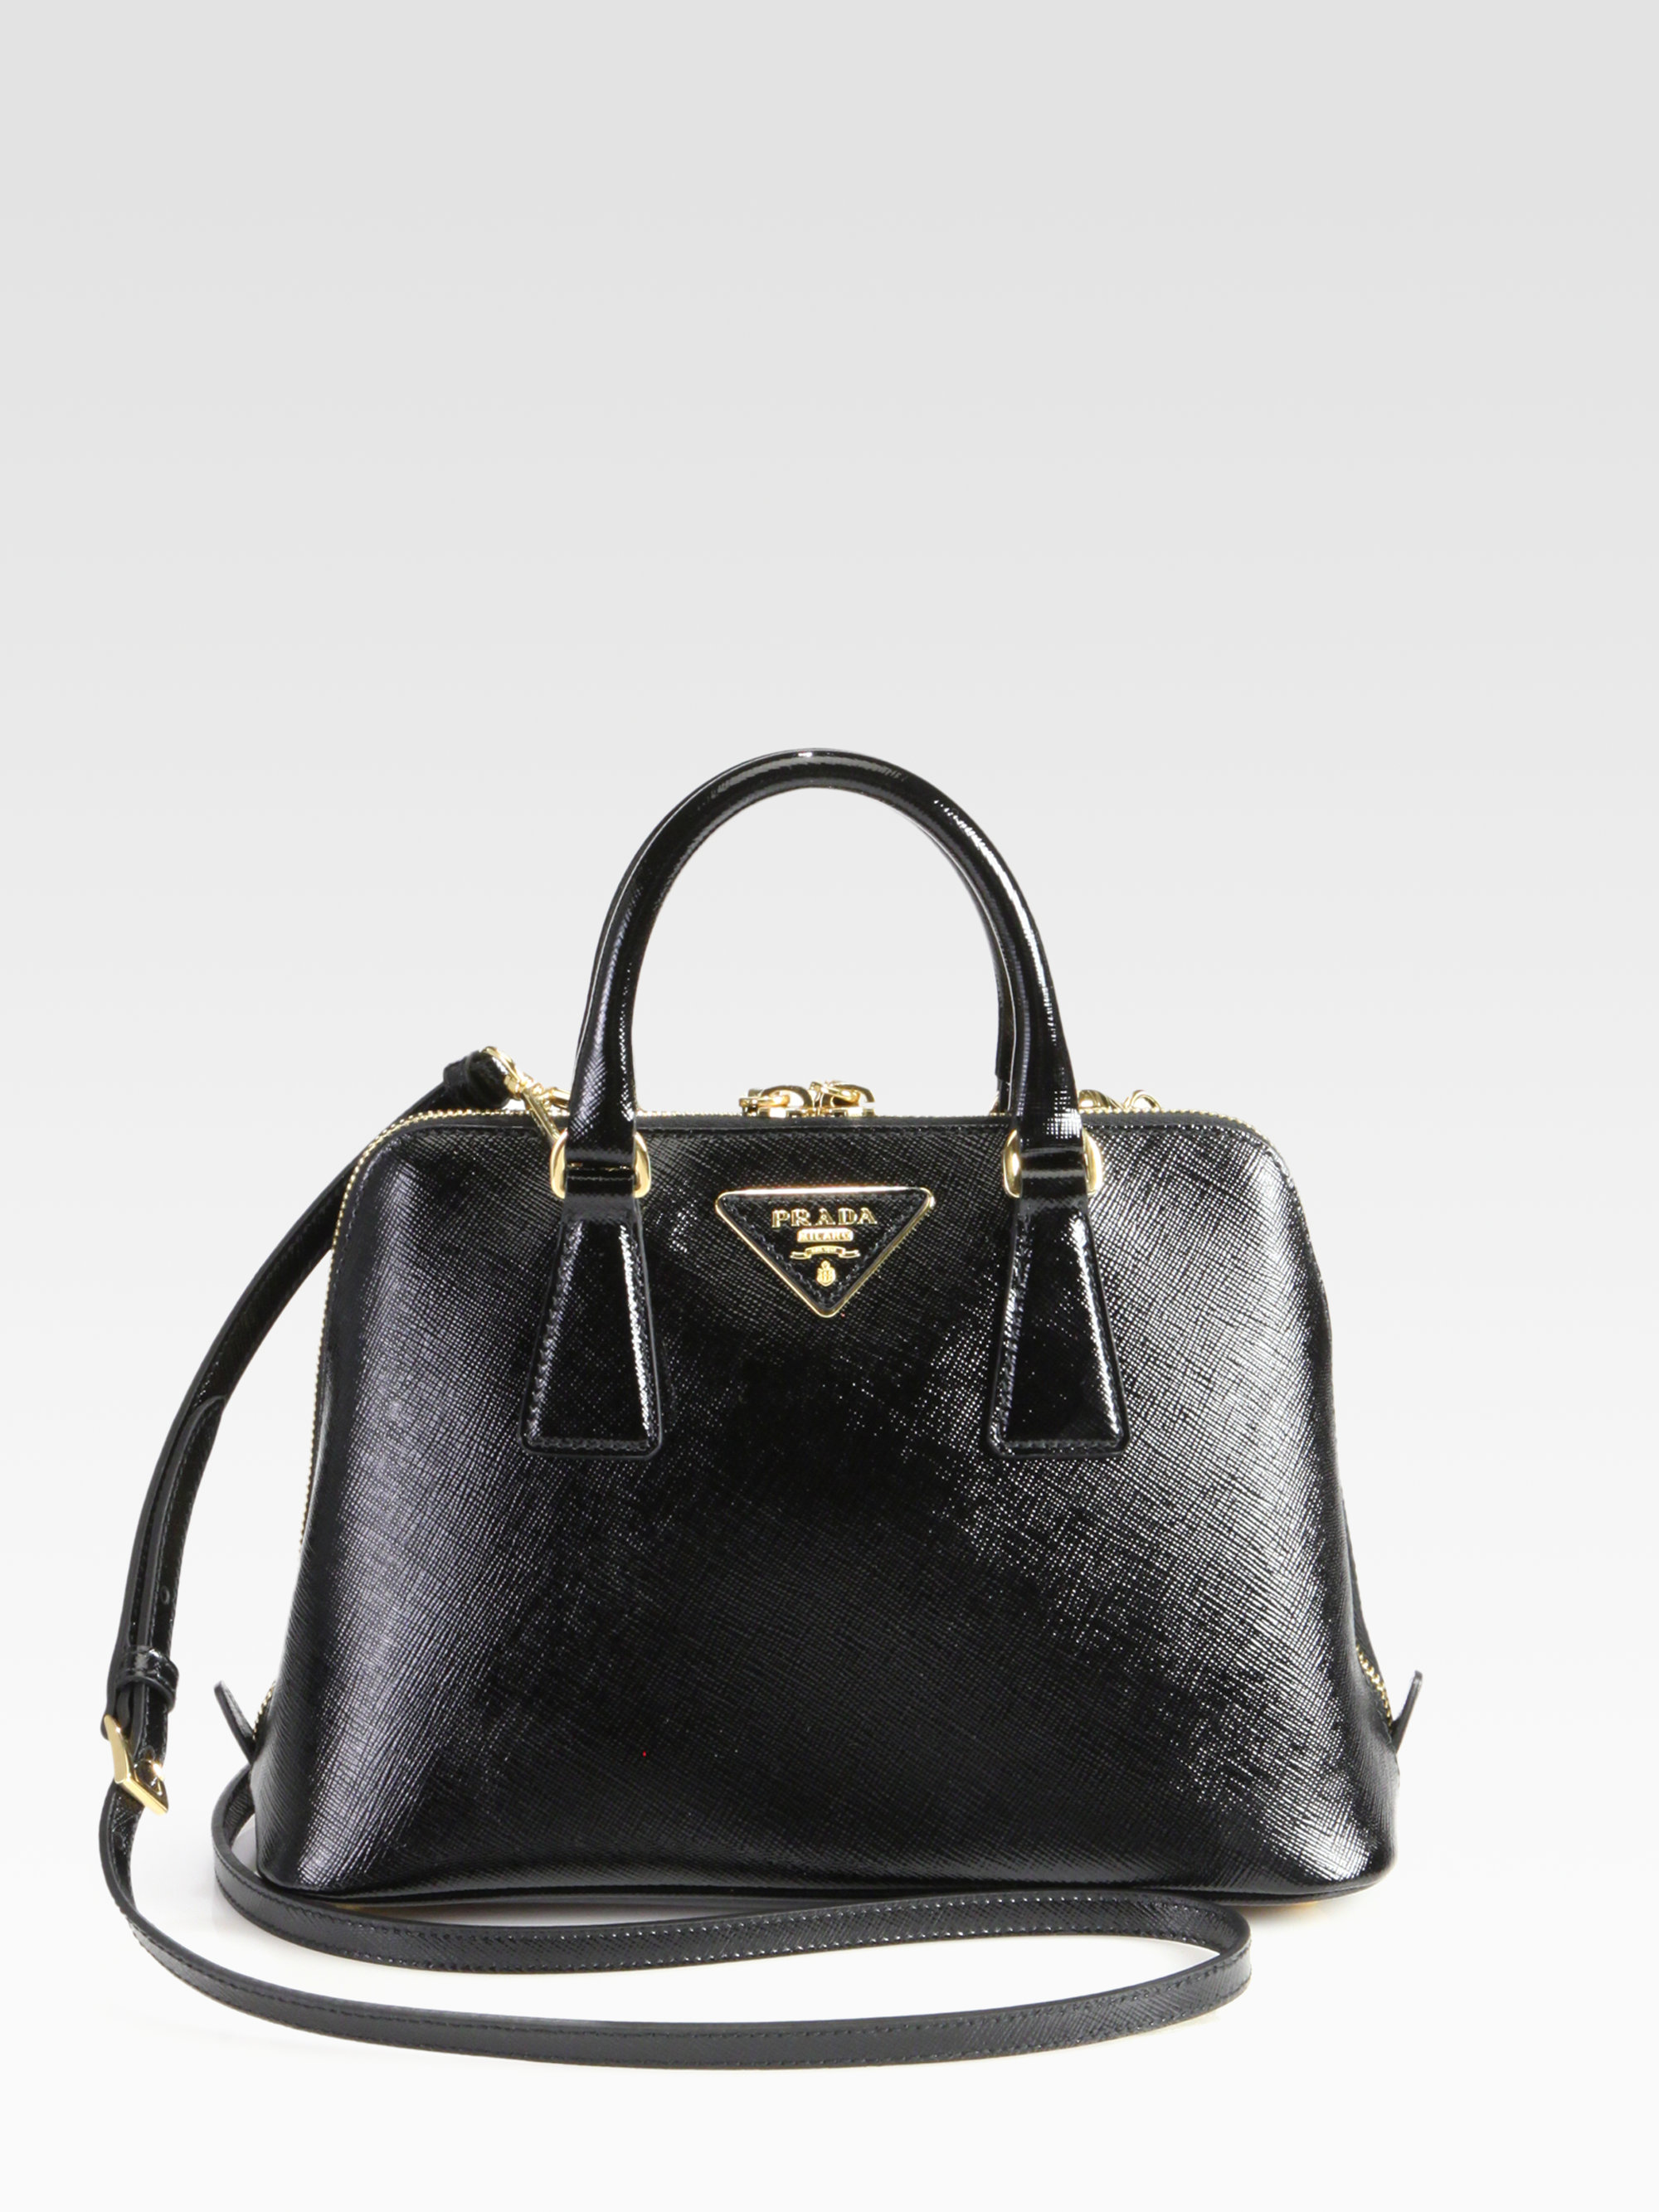 prada second hand bags - small black prada bag